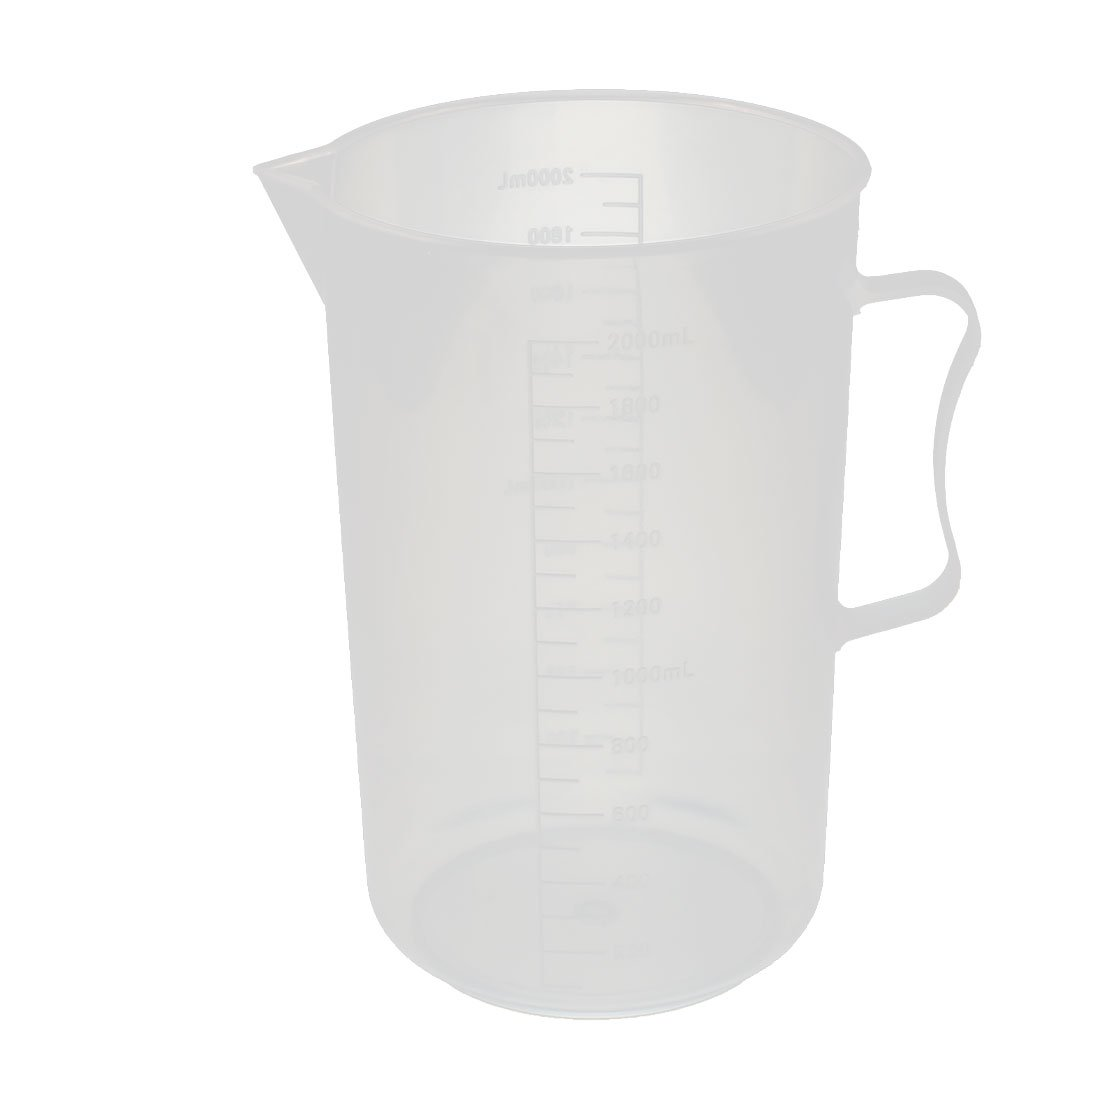 uxcell Kitchen Lab 2000mL Plastic Measurment Cup Jug Pour Spout Container